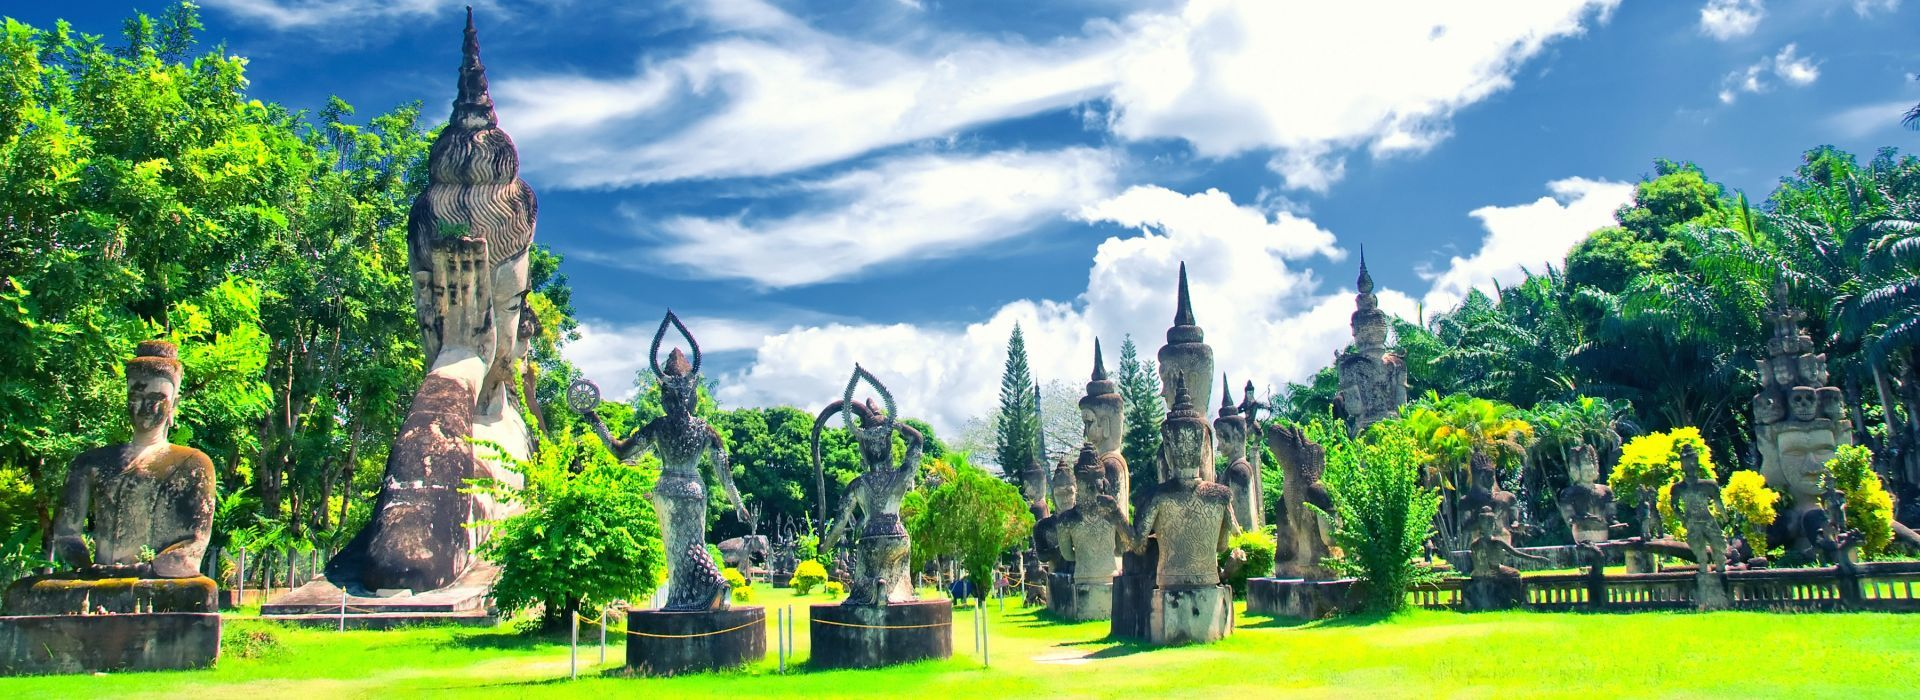 Cultural, religious and historic sites Tours in Vientiane